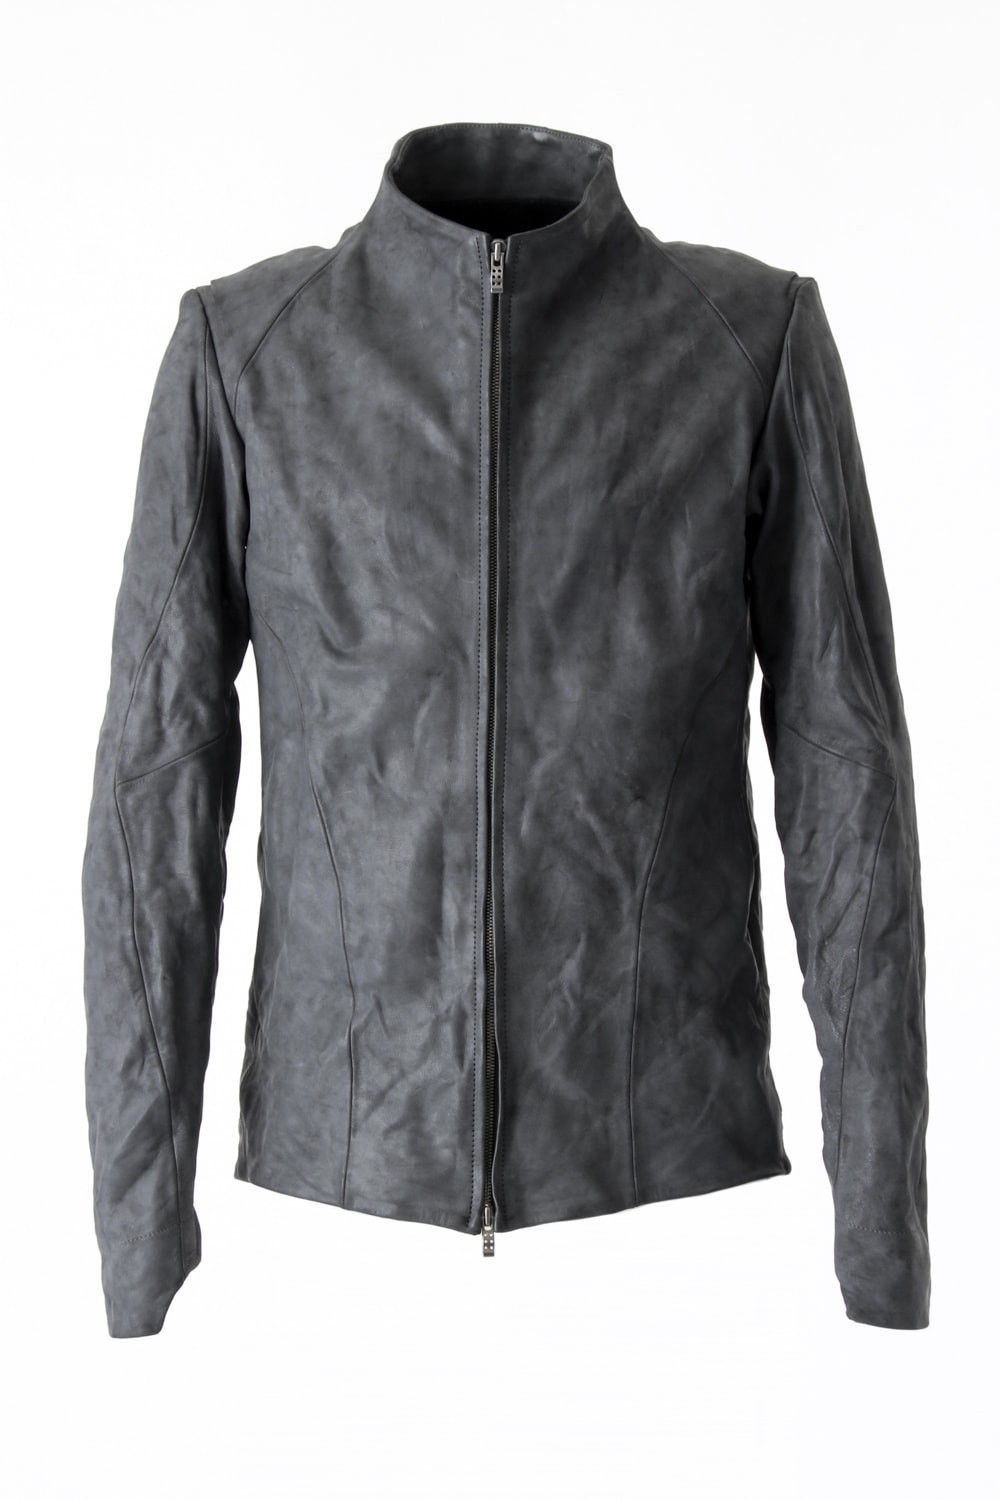 Calf leather jacket